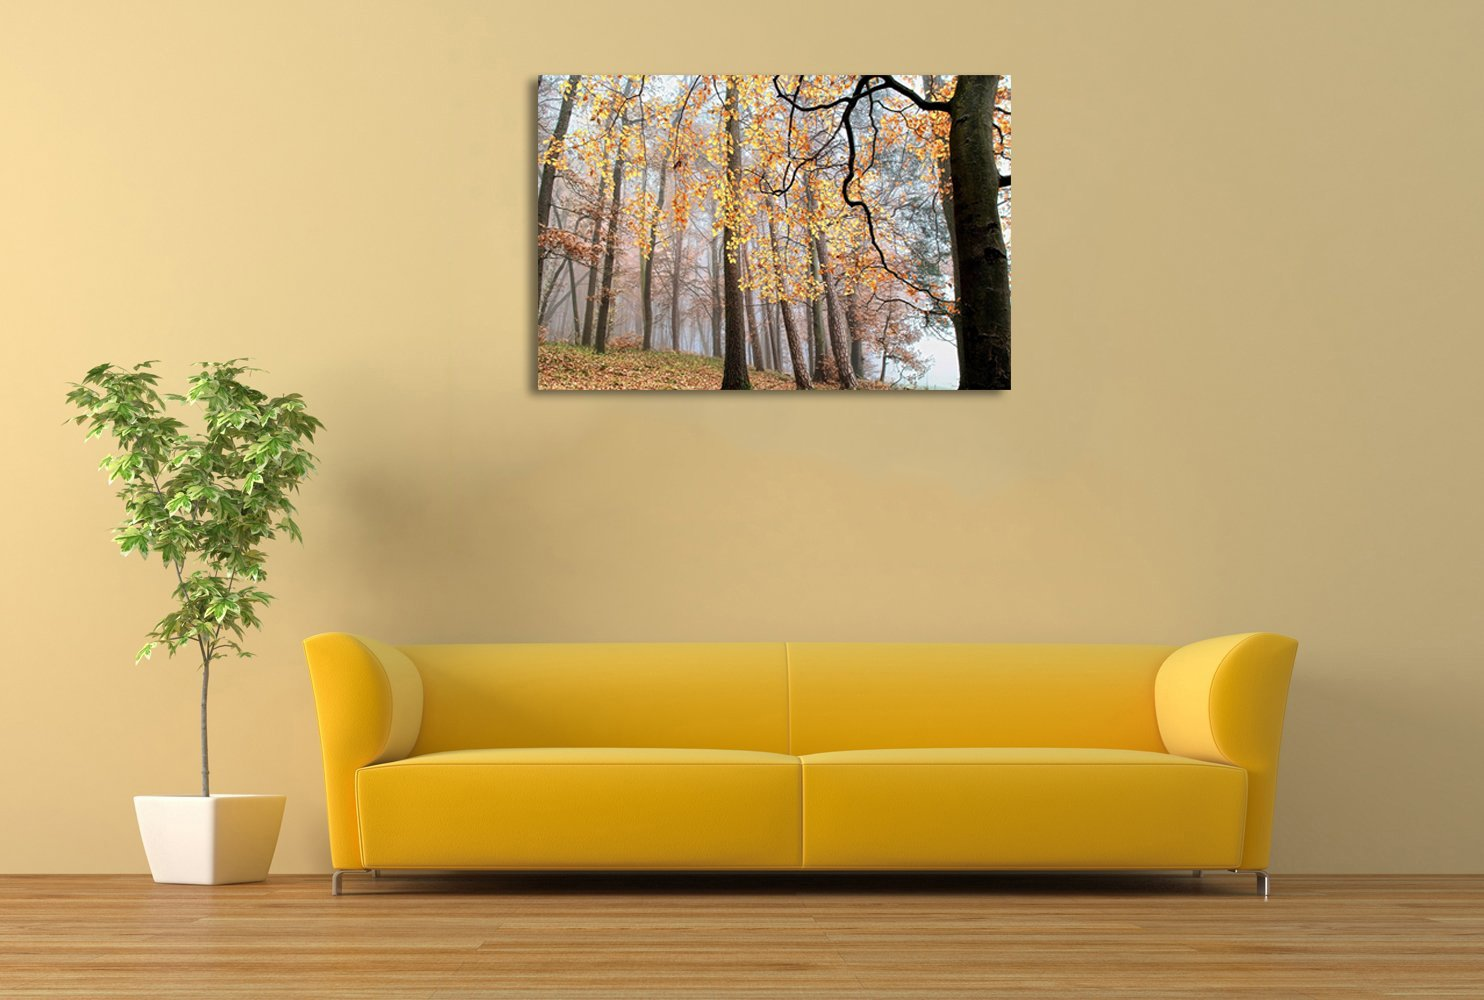 Amazon.com: Modern Wall Art Painting On Canvas Prints Autumn forest ...